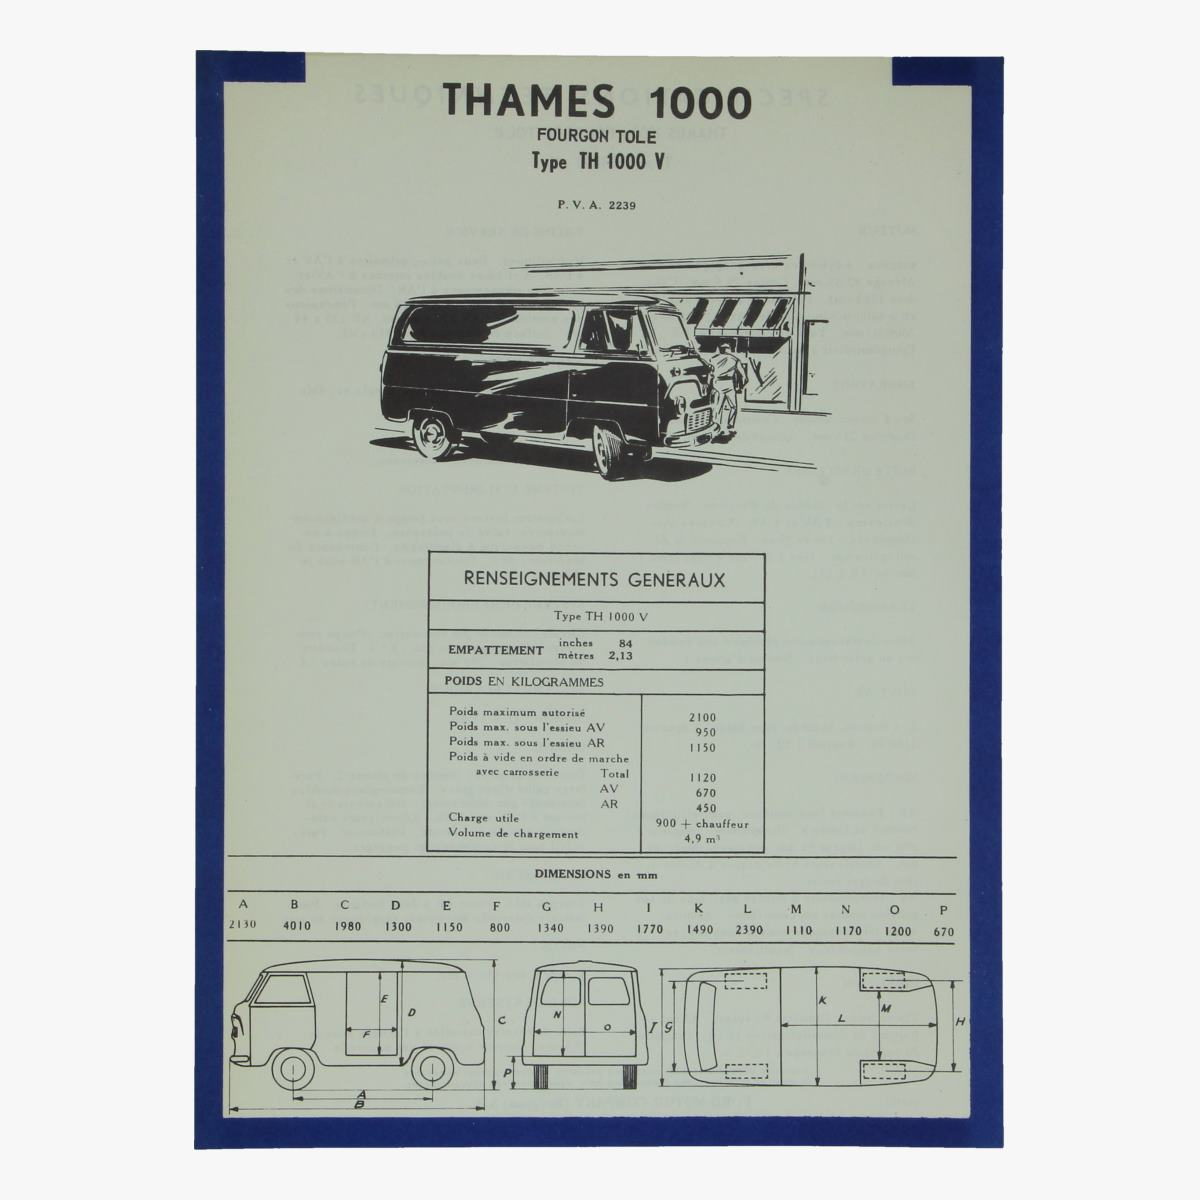 Afbeeldingen van specifications techniques thames 1000 fourgon tole th 1000-v ford